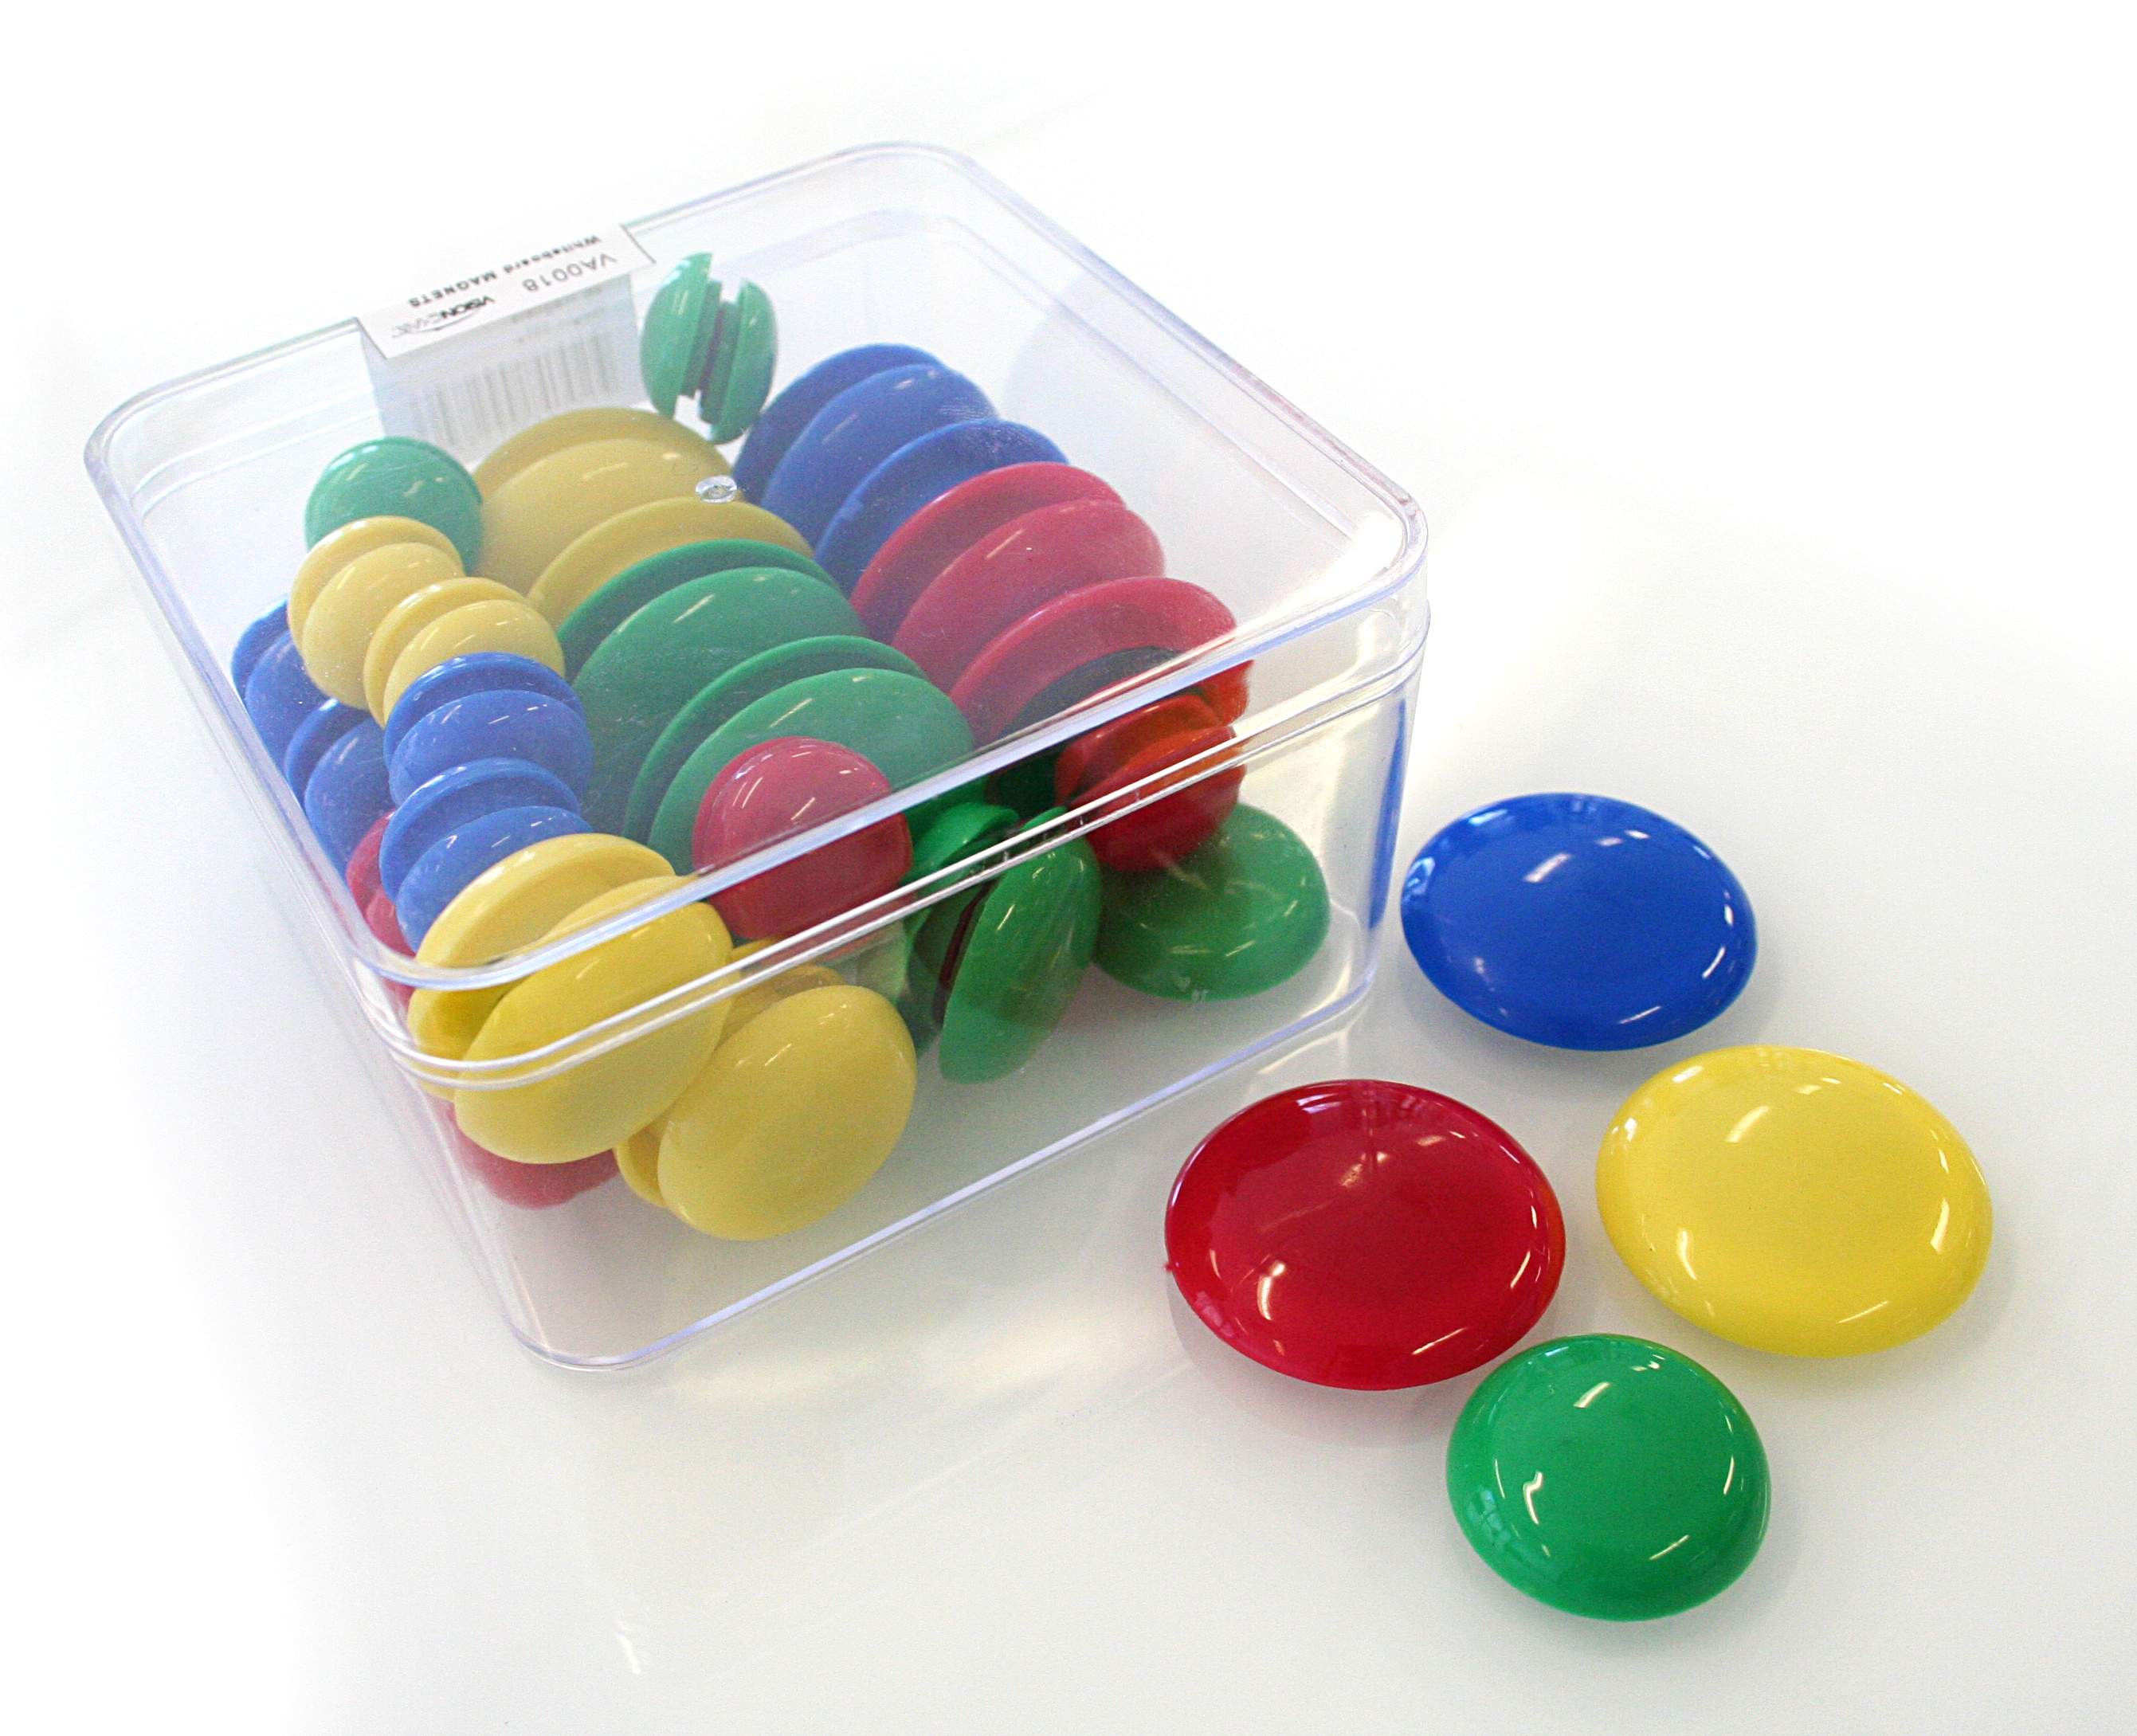 Whiteboard Magnets (3 Sizes and 4 Colours in each - total of 48 Magnets)